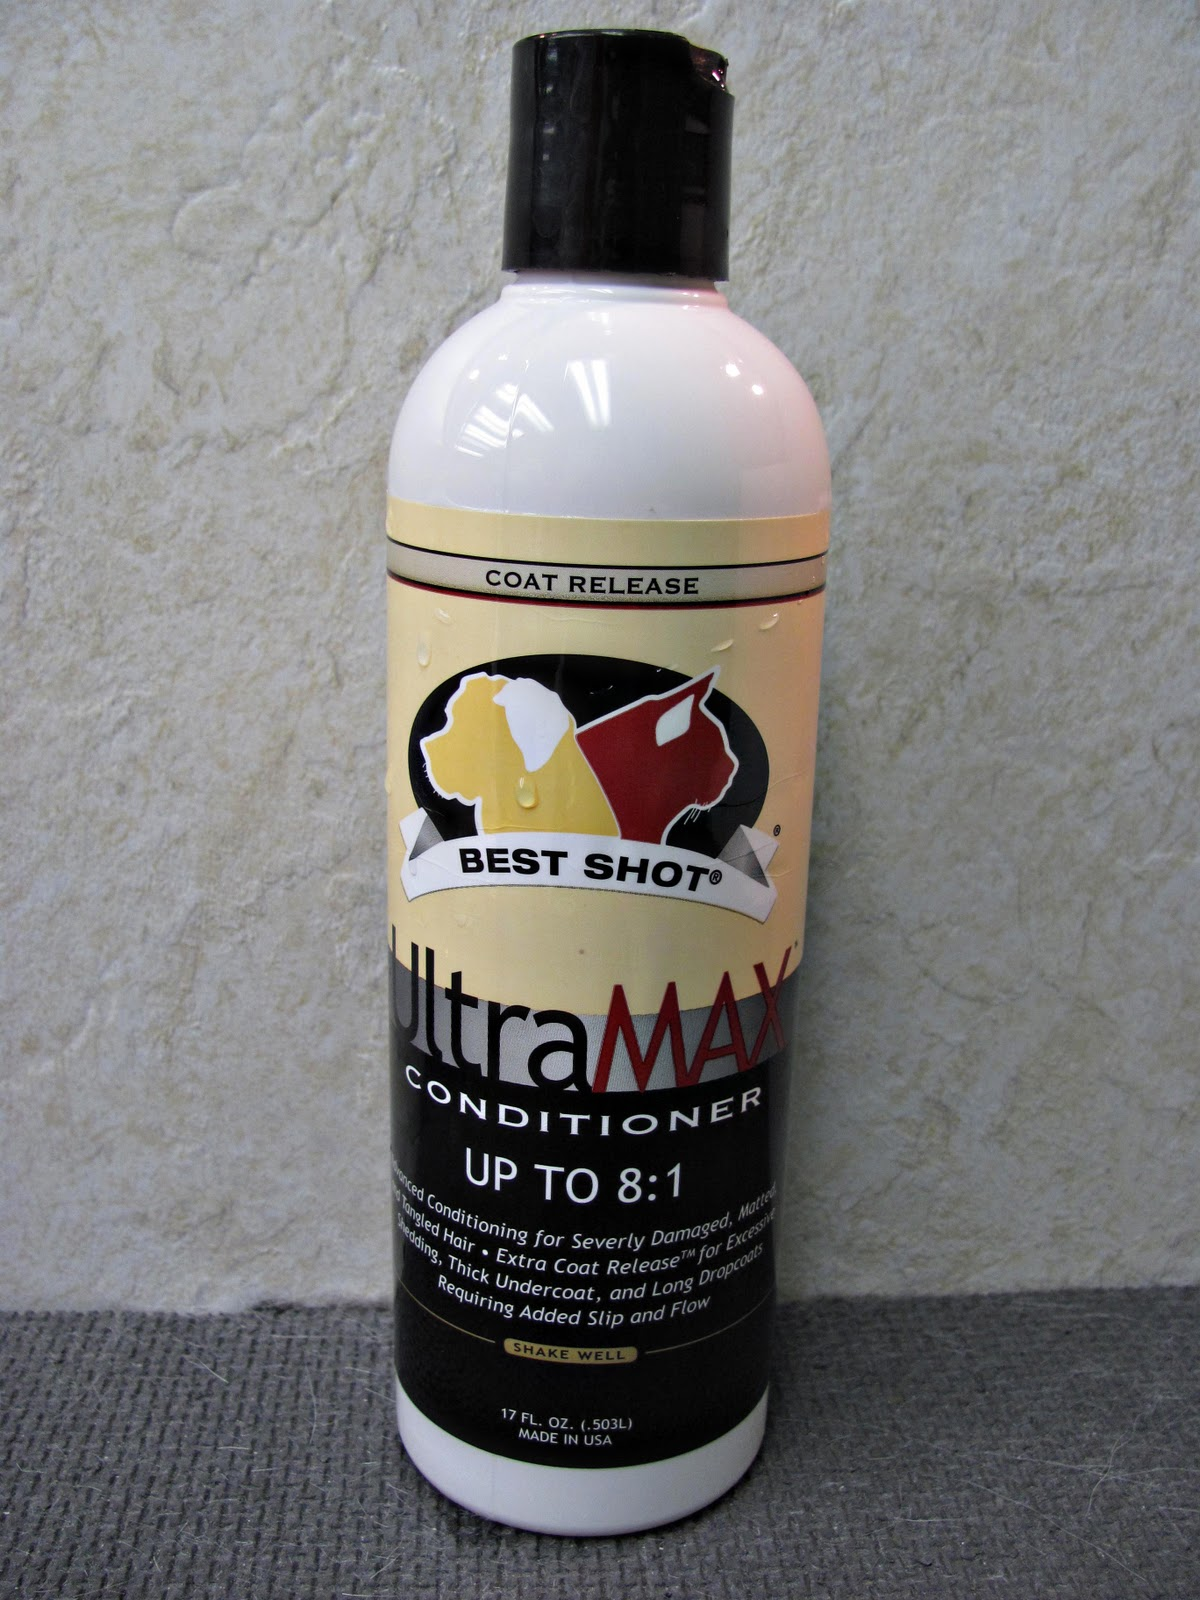 Just like you can use Dawn (in an emergency) for fleas, as long as you rinse, rinse, and rinse some more. They make cruddy shampoos/conditioners for dogs, just like people. But since there are dozens of superior products made for dogs, I don't see any real need to experiment with human products.